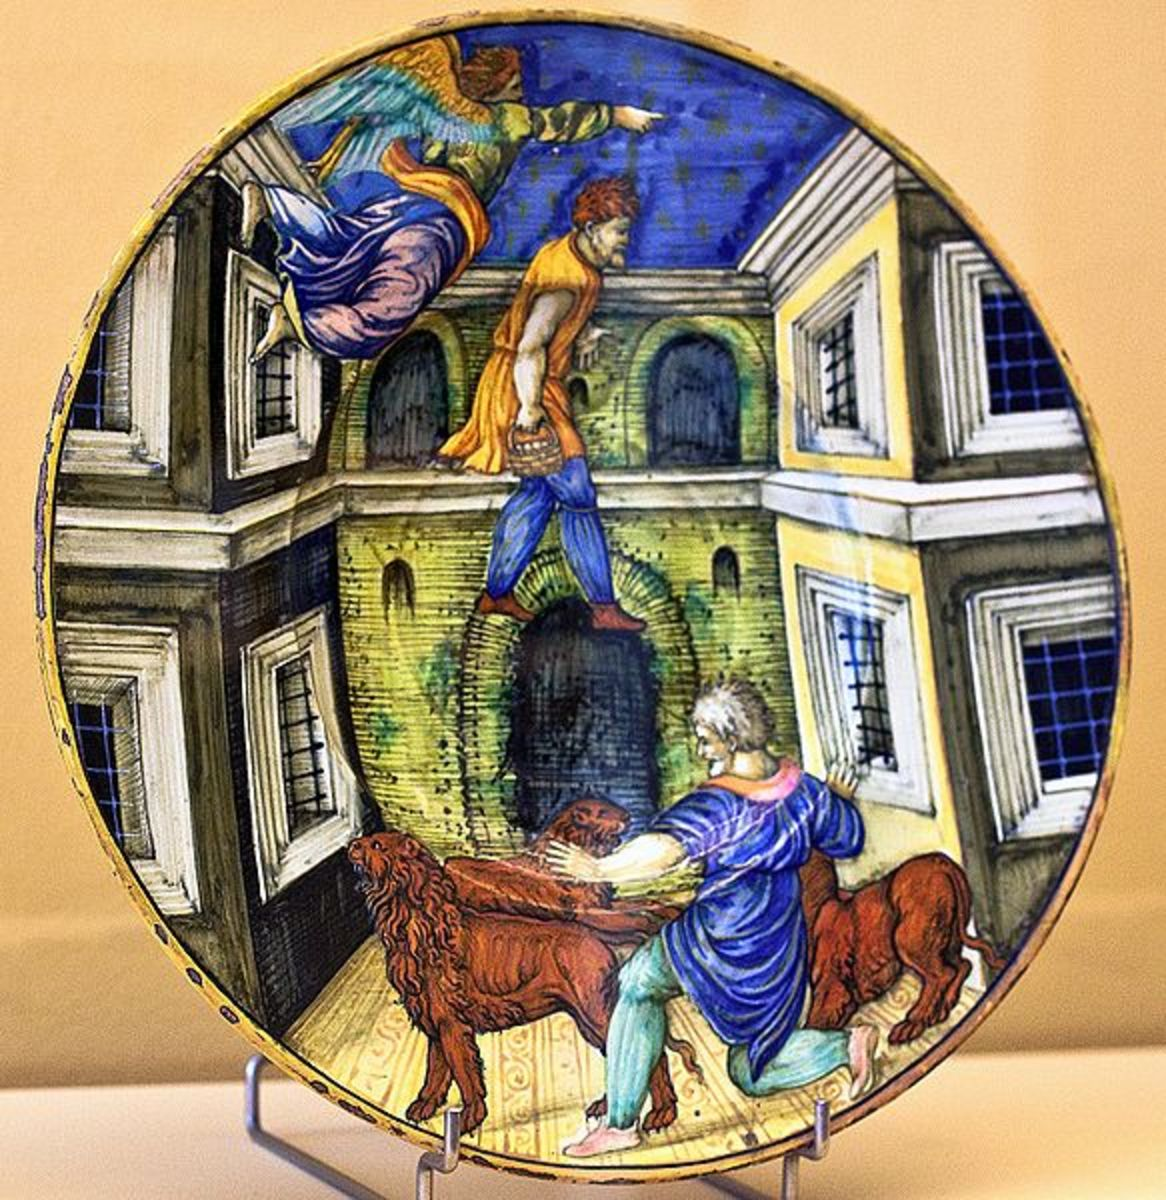 Majolica plate in Museum Boymans van Beuningen in Rotterdam. Photographed by Artshooter. Image courtesy Wiki Commons